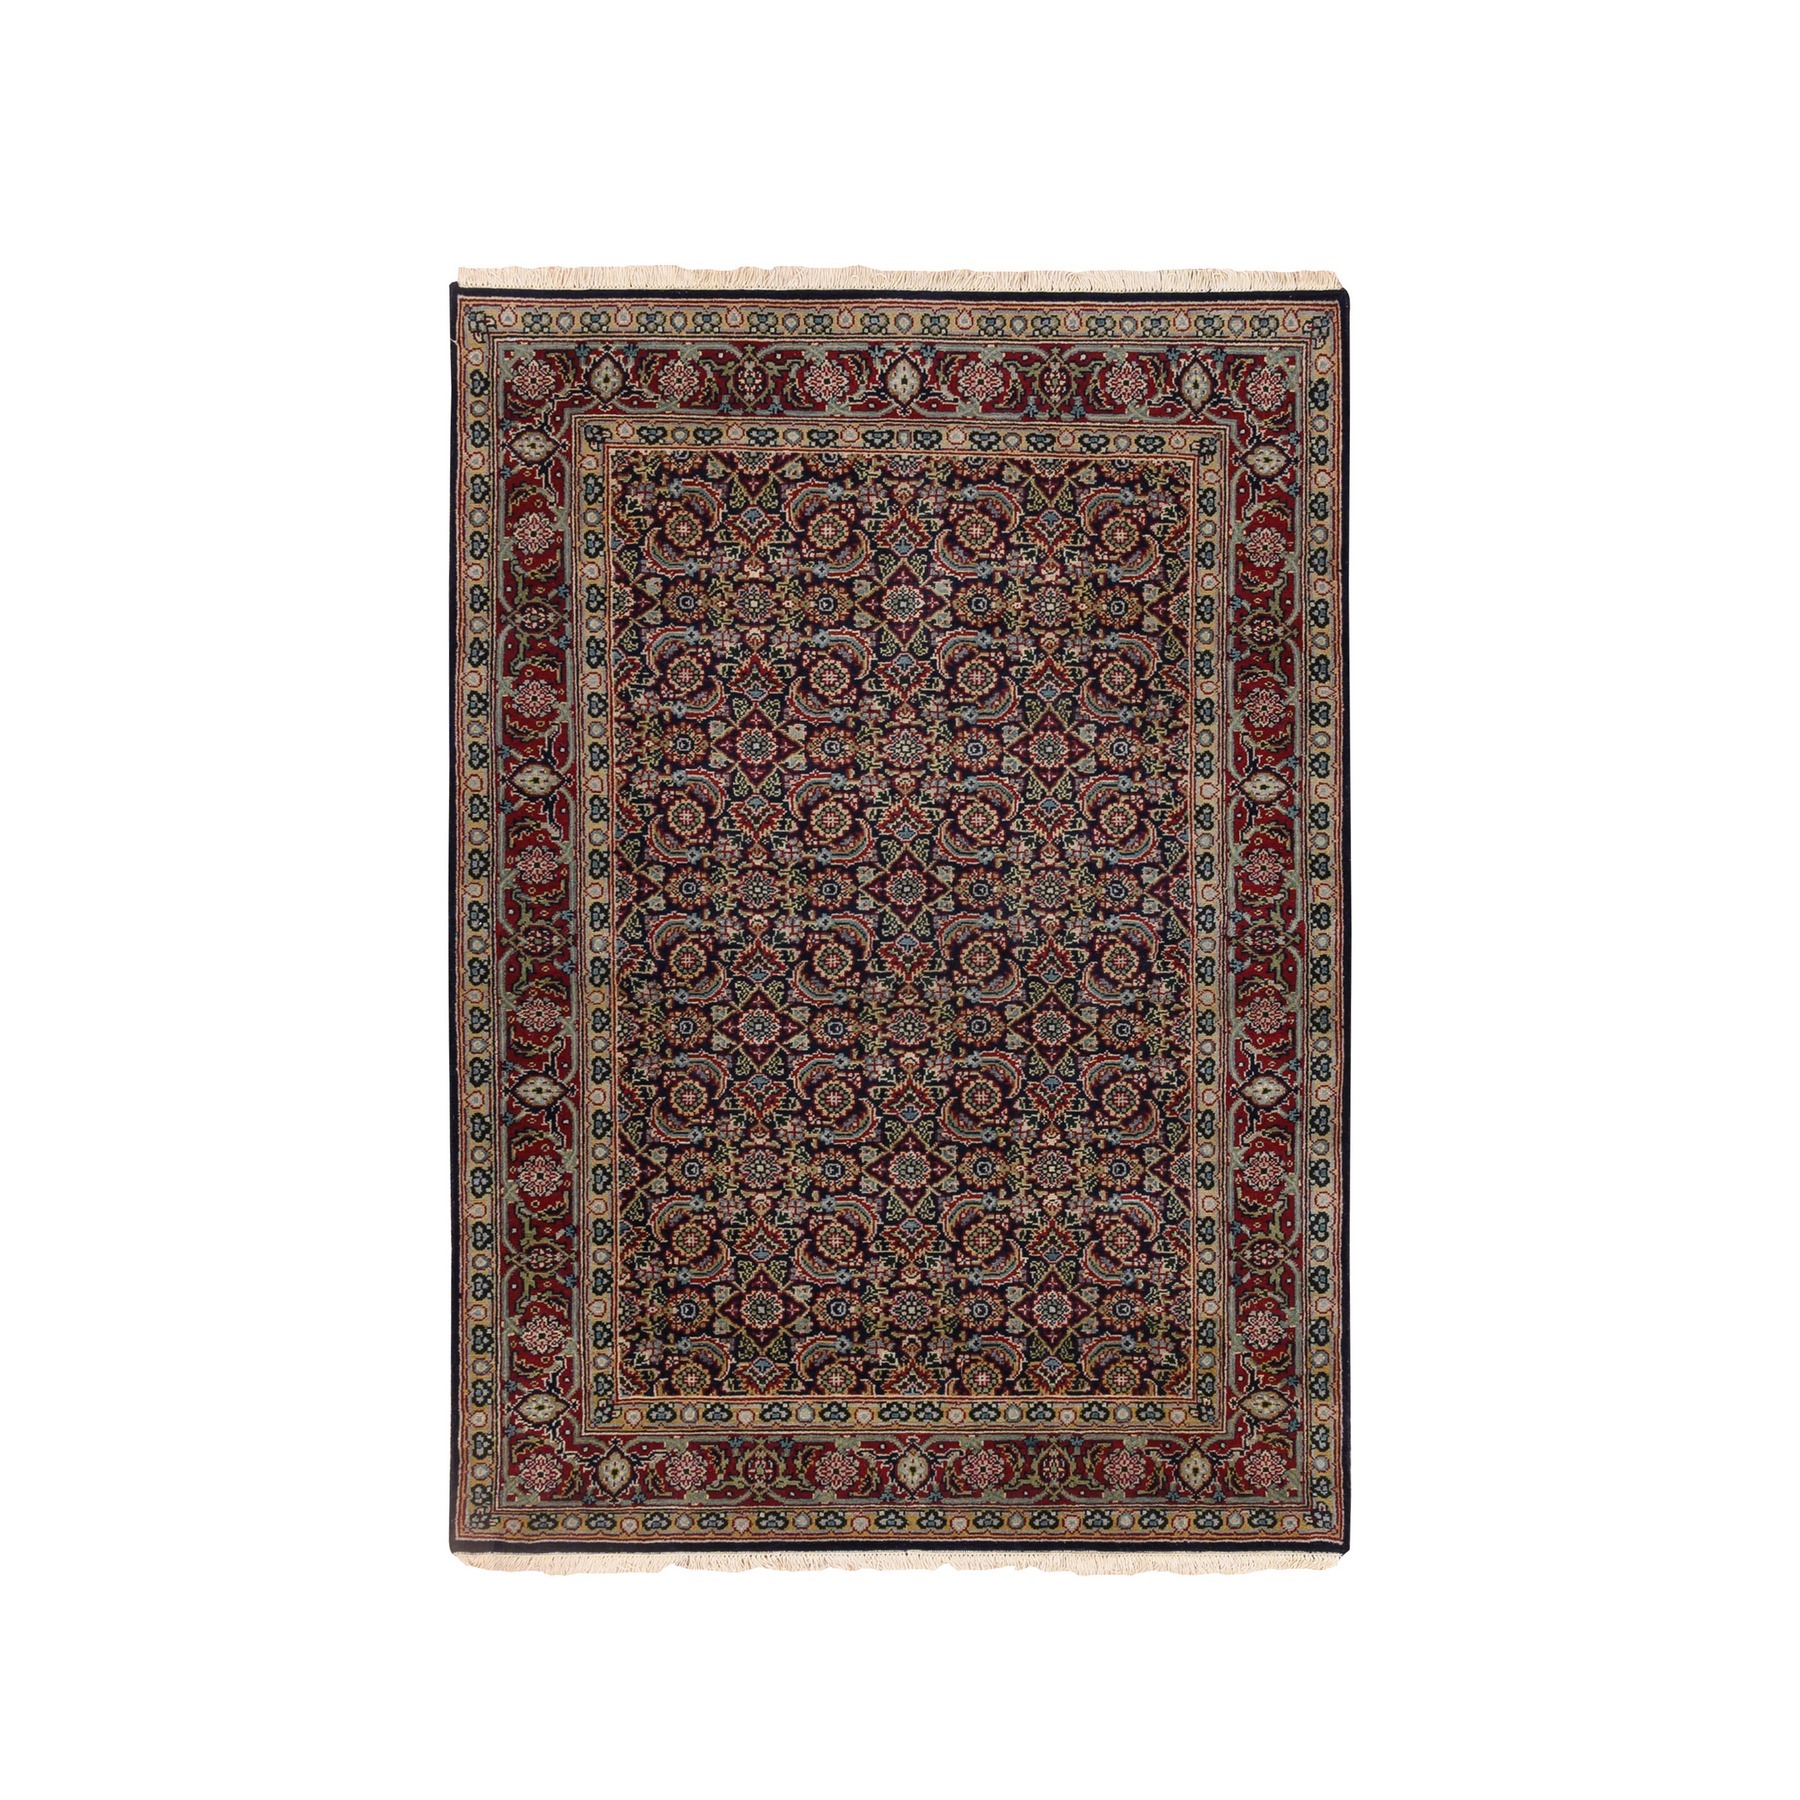 Pirniakan Collection Hand Knotted Blue Rug No: 1124690